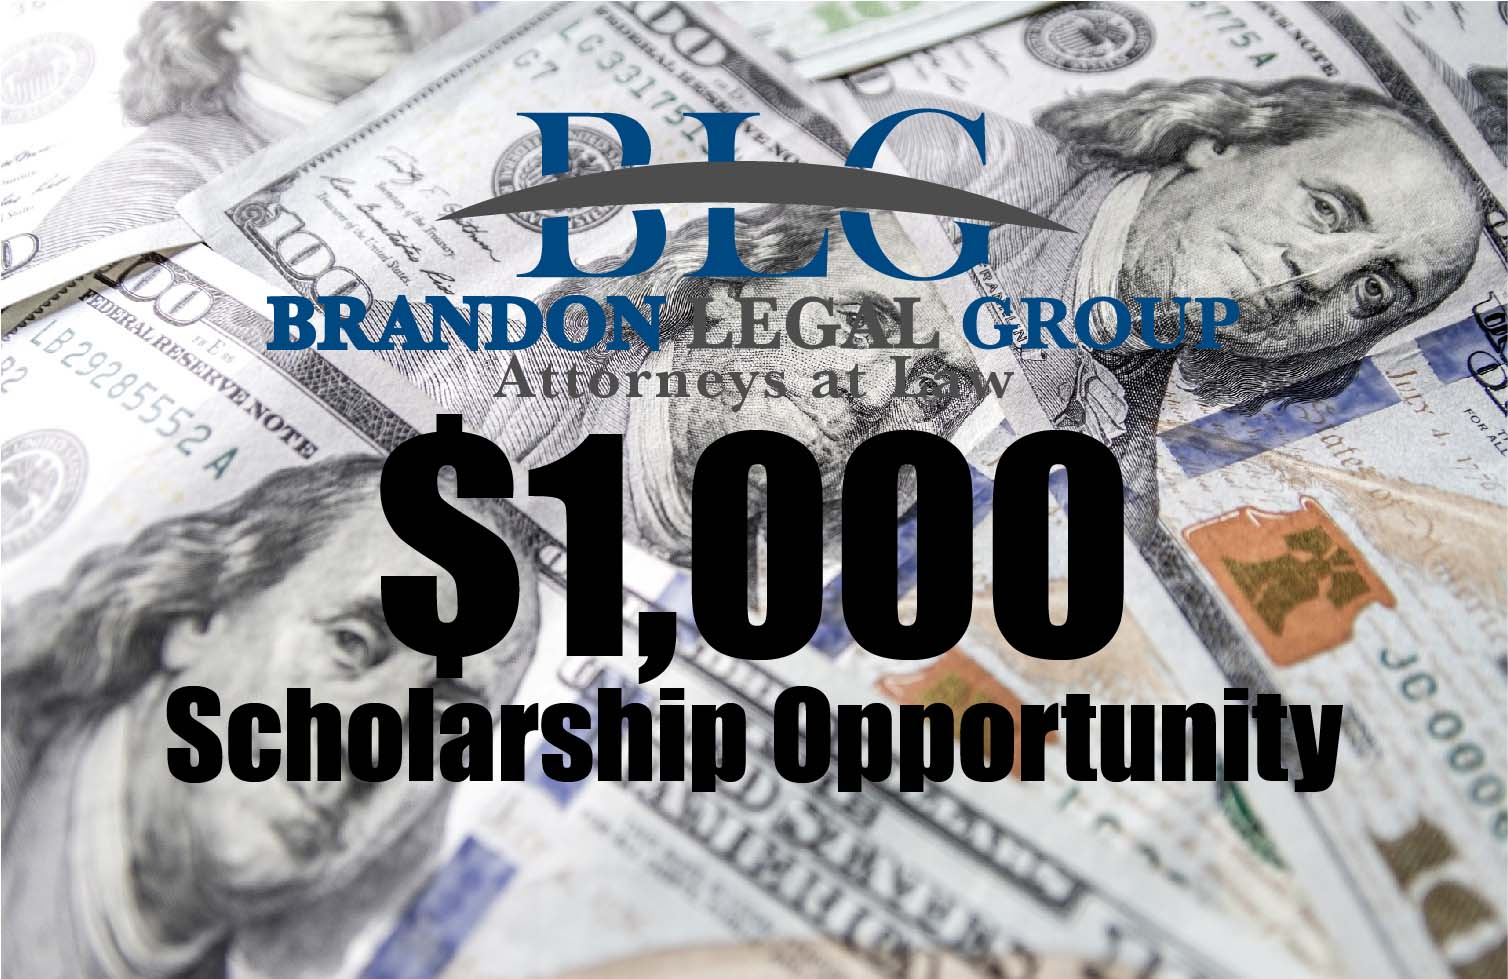 BLG's Second $1,000 Scholarship Opportunity